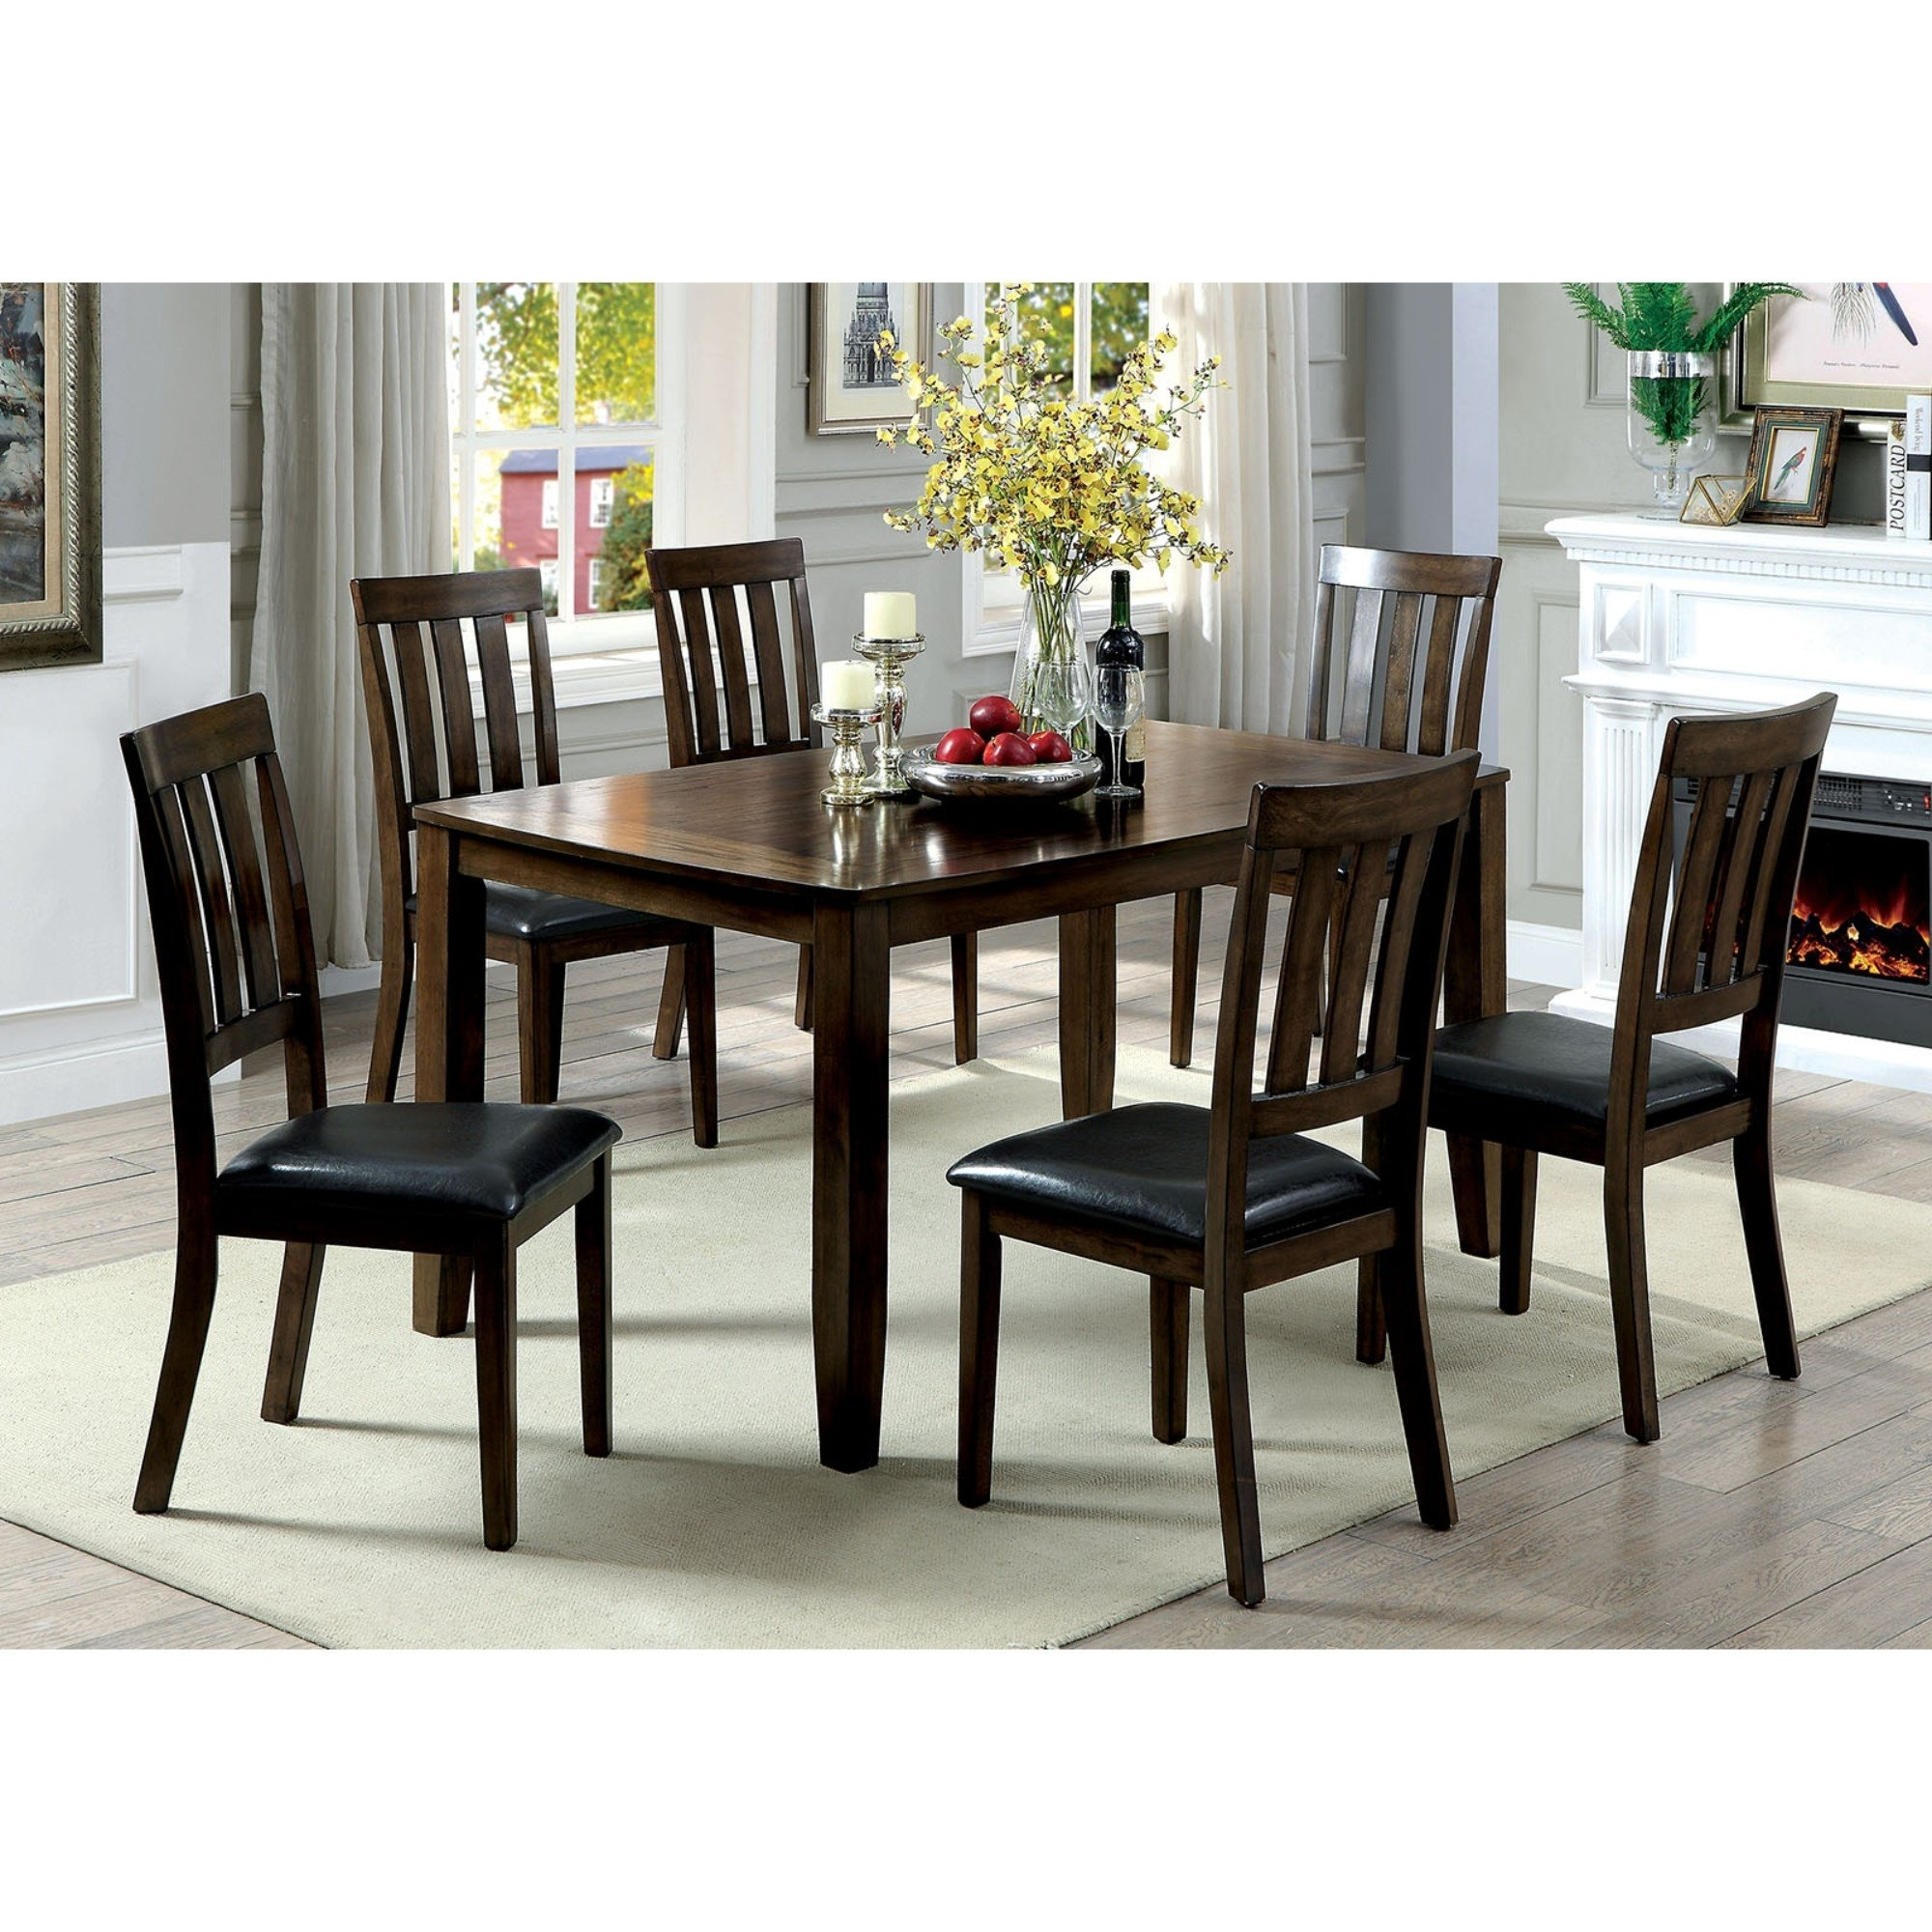 Millwood Pines Devon Wooden 7 Piece Counter Height Dining Table Set Pertaining To Most Up To Date Candice Ii 6 Piece Extension Rectangle Dining Sets (Image 9 of 20)